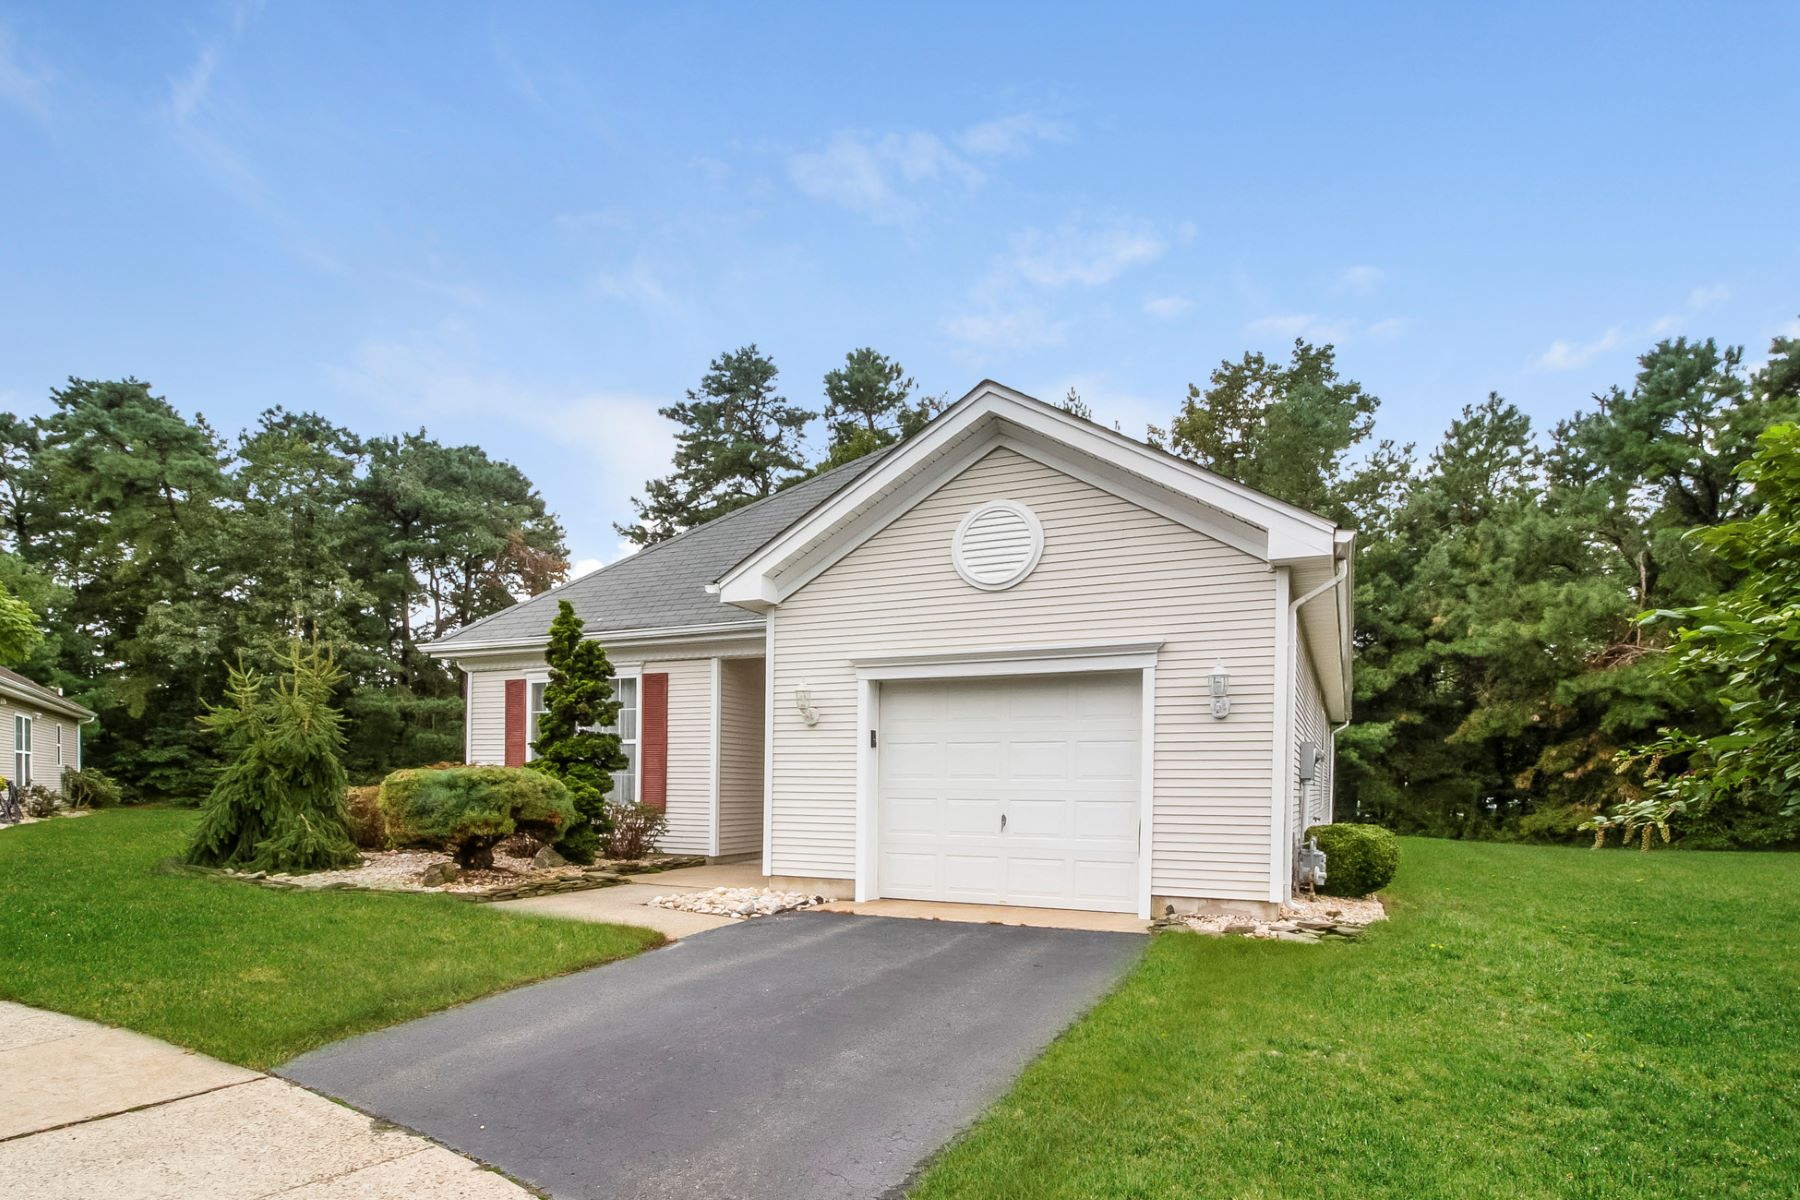 Single Family Home for Sale at Expanded Bayberry Model 9 Fallcrest Court, Lakewood, New Jersey 08701 United States